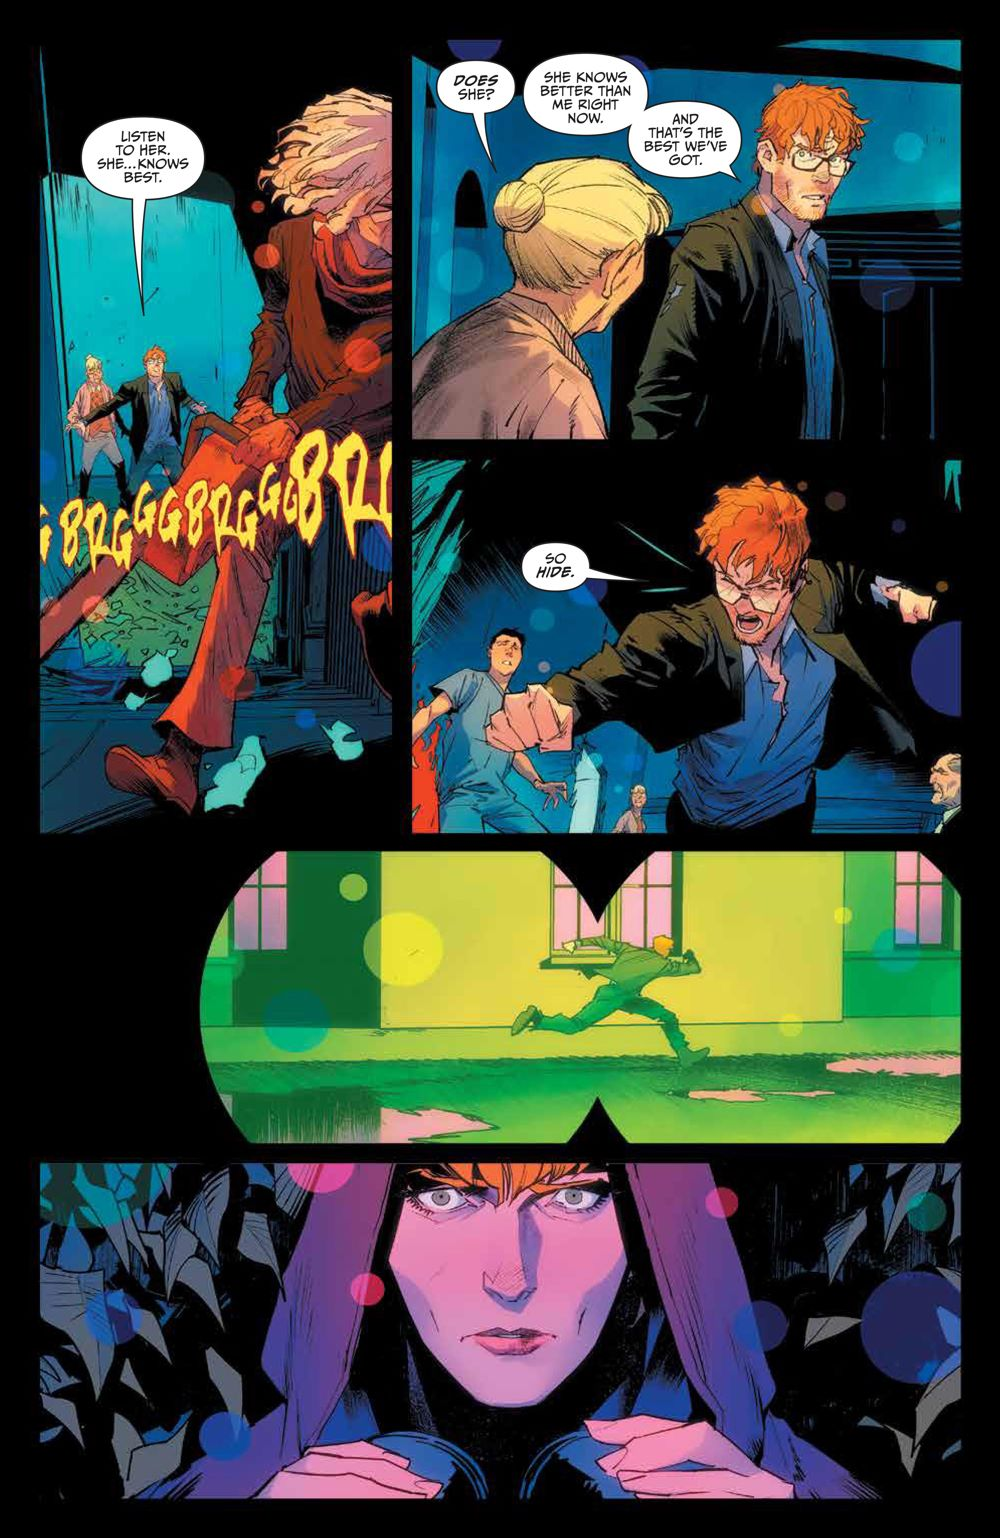 OnceFuture_012_PRESS_7-1 ComicList Previews: ONCE AND FUTURE #12